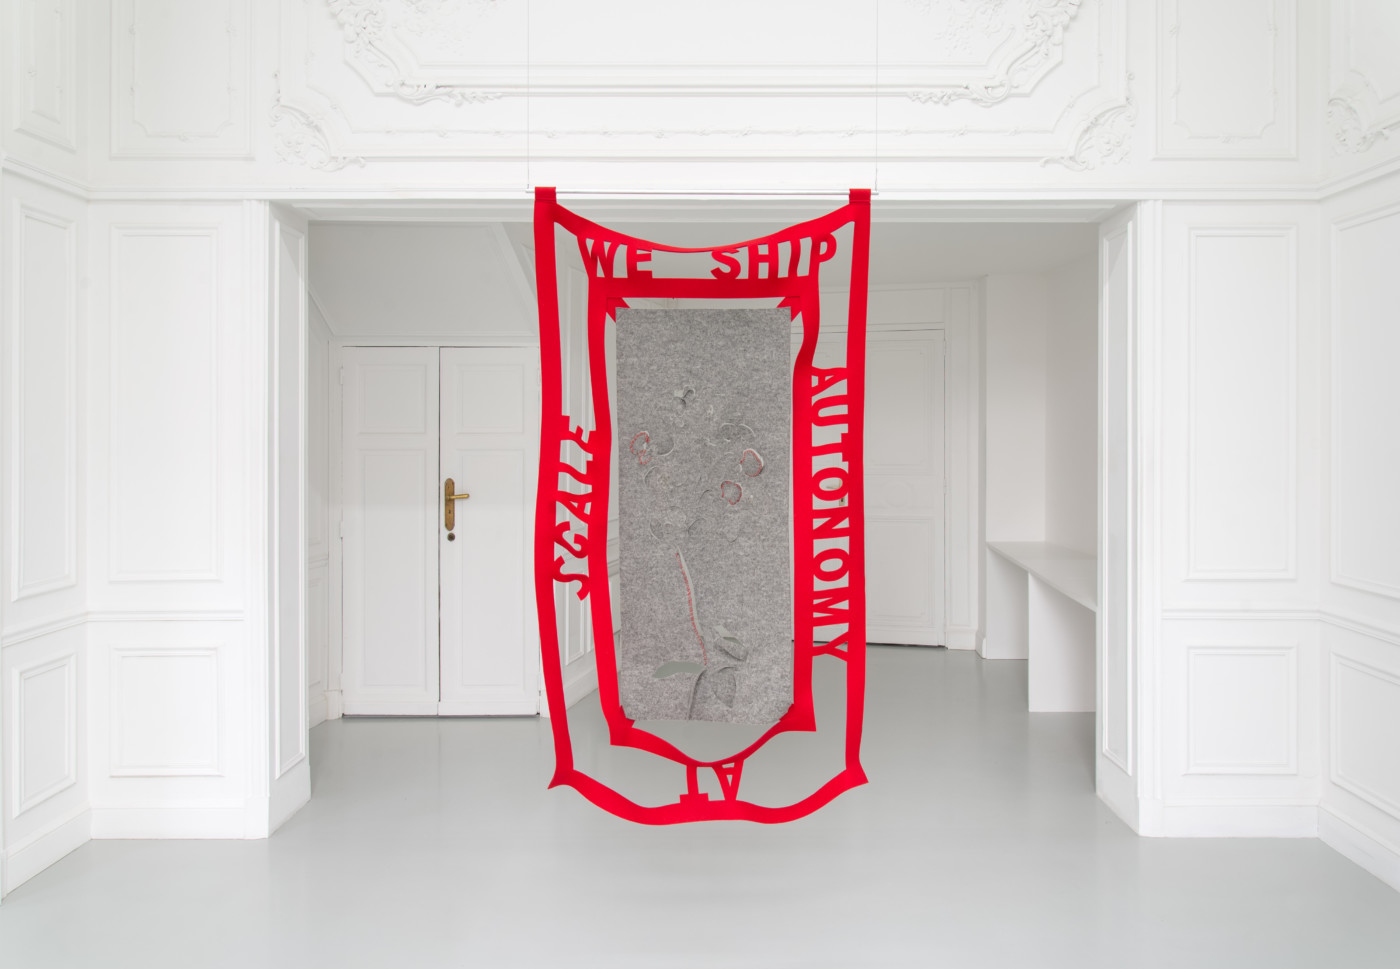 DENA YAGO  WE SHIP AUTONOMY AT SCALE , 2019 Pressed wool, silver, aluminum 160 x 91 cm / 63 x 35.8 in - High Art Gallery Paris